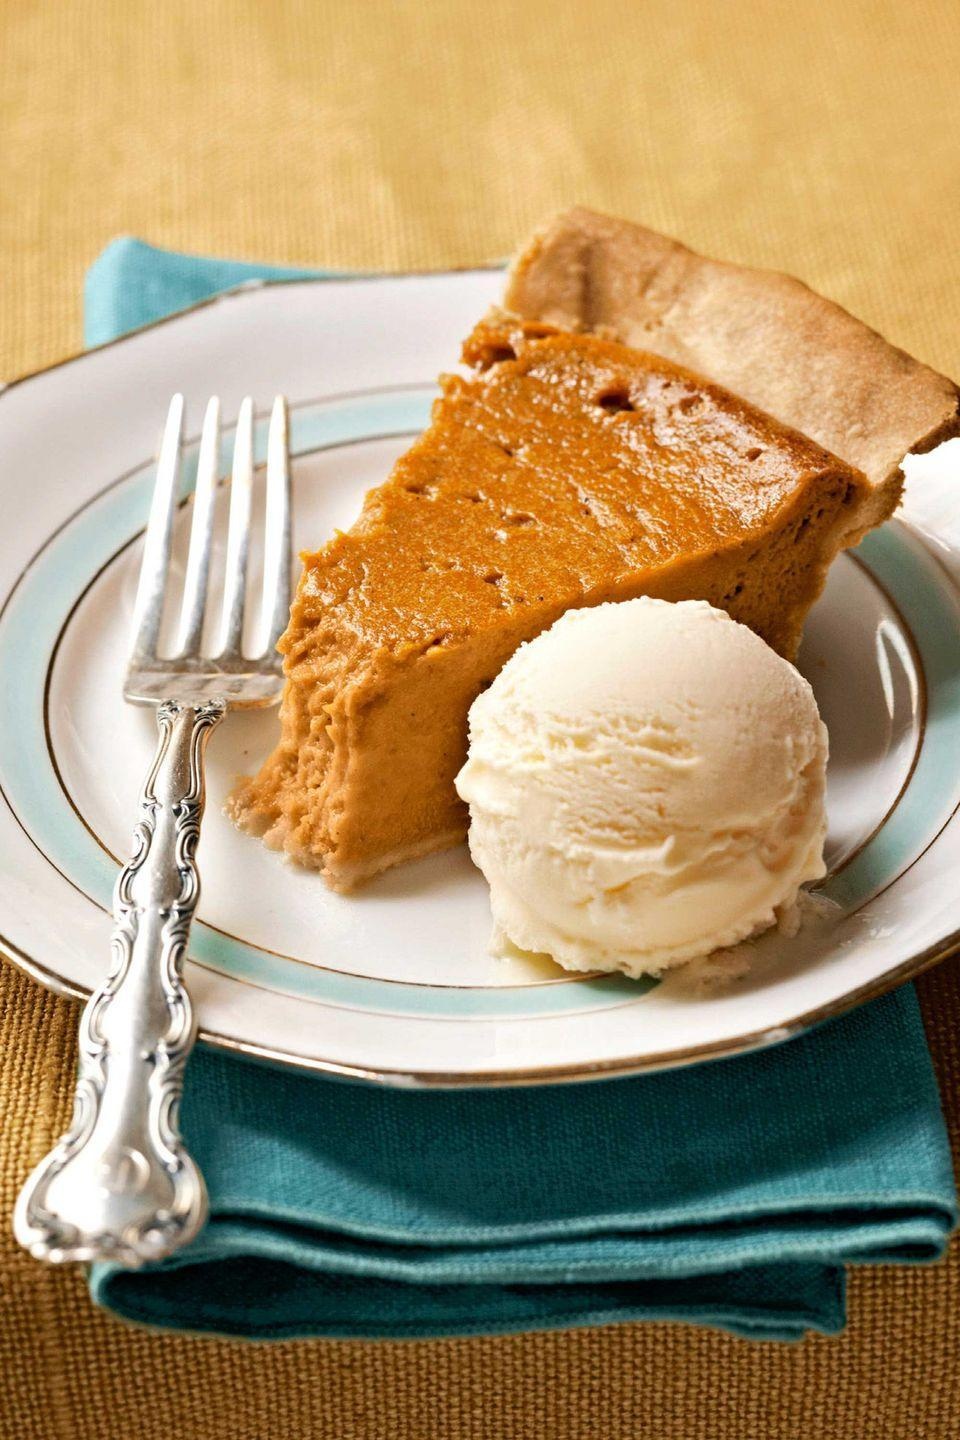 """<p>This ethereal adaptation of conventional sweet-potato pie relies on fresh lemon juice and buttermilk for its tangy, crowd-pleasing flavor.</p><p><strong>Recipes:</strong></p><p><strong><a href=""""https://www.countryliving.com/food-drinks/recipes/a3072/sweet-potato-pie-recipe-clv1109/"""" rel=""""nofollow noopener"""" target=""""_blank"""" data-ylk=""""slk:Sweet-Potato Pie"""" class=""""link rapid-noclick-resp"""">Sweet-Potato Pie</a></strong></p><p><strong><a href=""""https://www.countryliving.com/food-drinks/recipes/a3068/buttermilk-ice-cream-recipe/"""" rel=""""nofollow noopener"""" target=""""_blank"""" data-ylk=""""slk:Buttermilk Ice Cream"""" class=""""link rapid-noclick-resp"""">Buttermilk Ice Cream</a></strong></p>"""